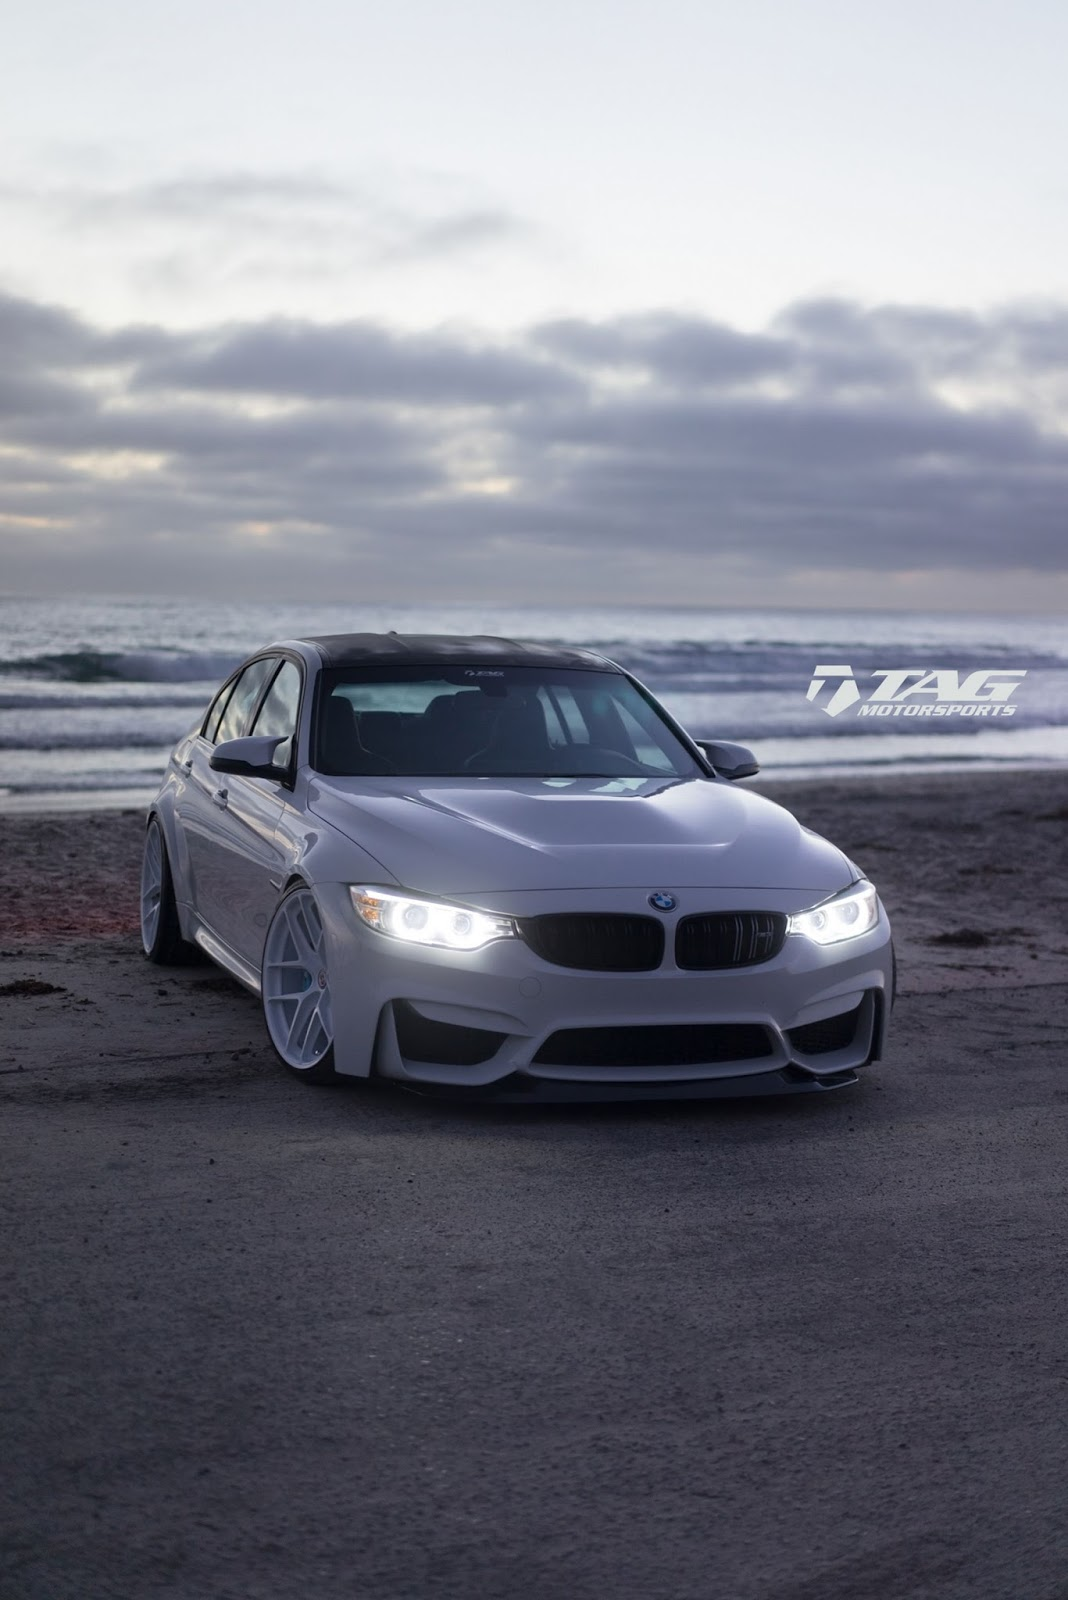 All White Bmw M3 Is A Unique Tuning Project Carscoops